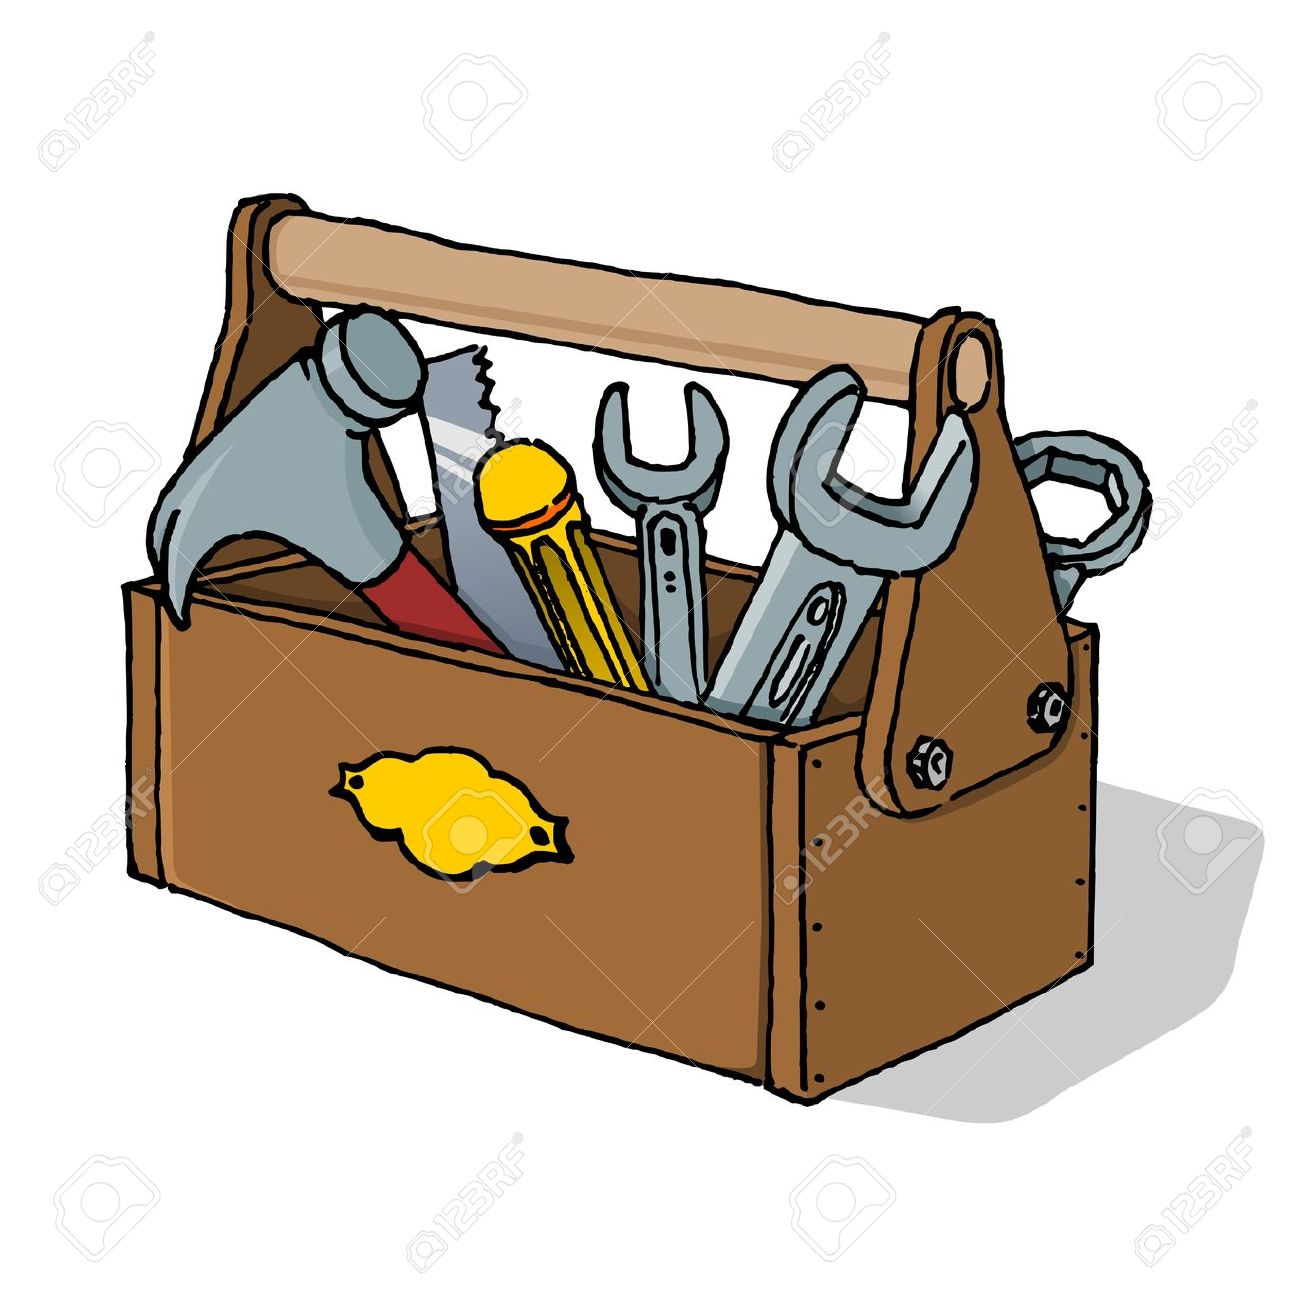 Home Maintenance Toolbox Clipart Panda Free Clipart Images